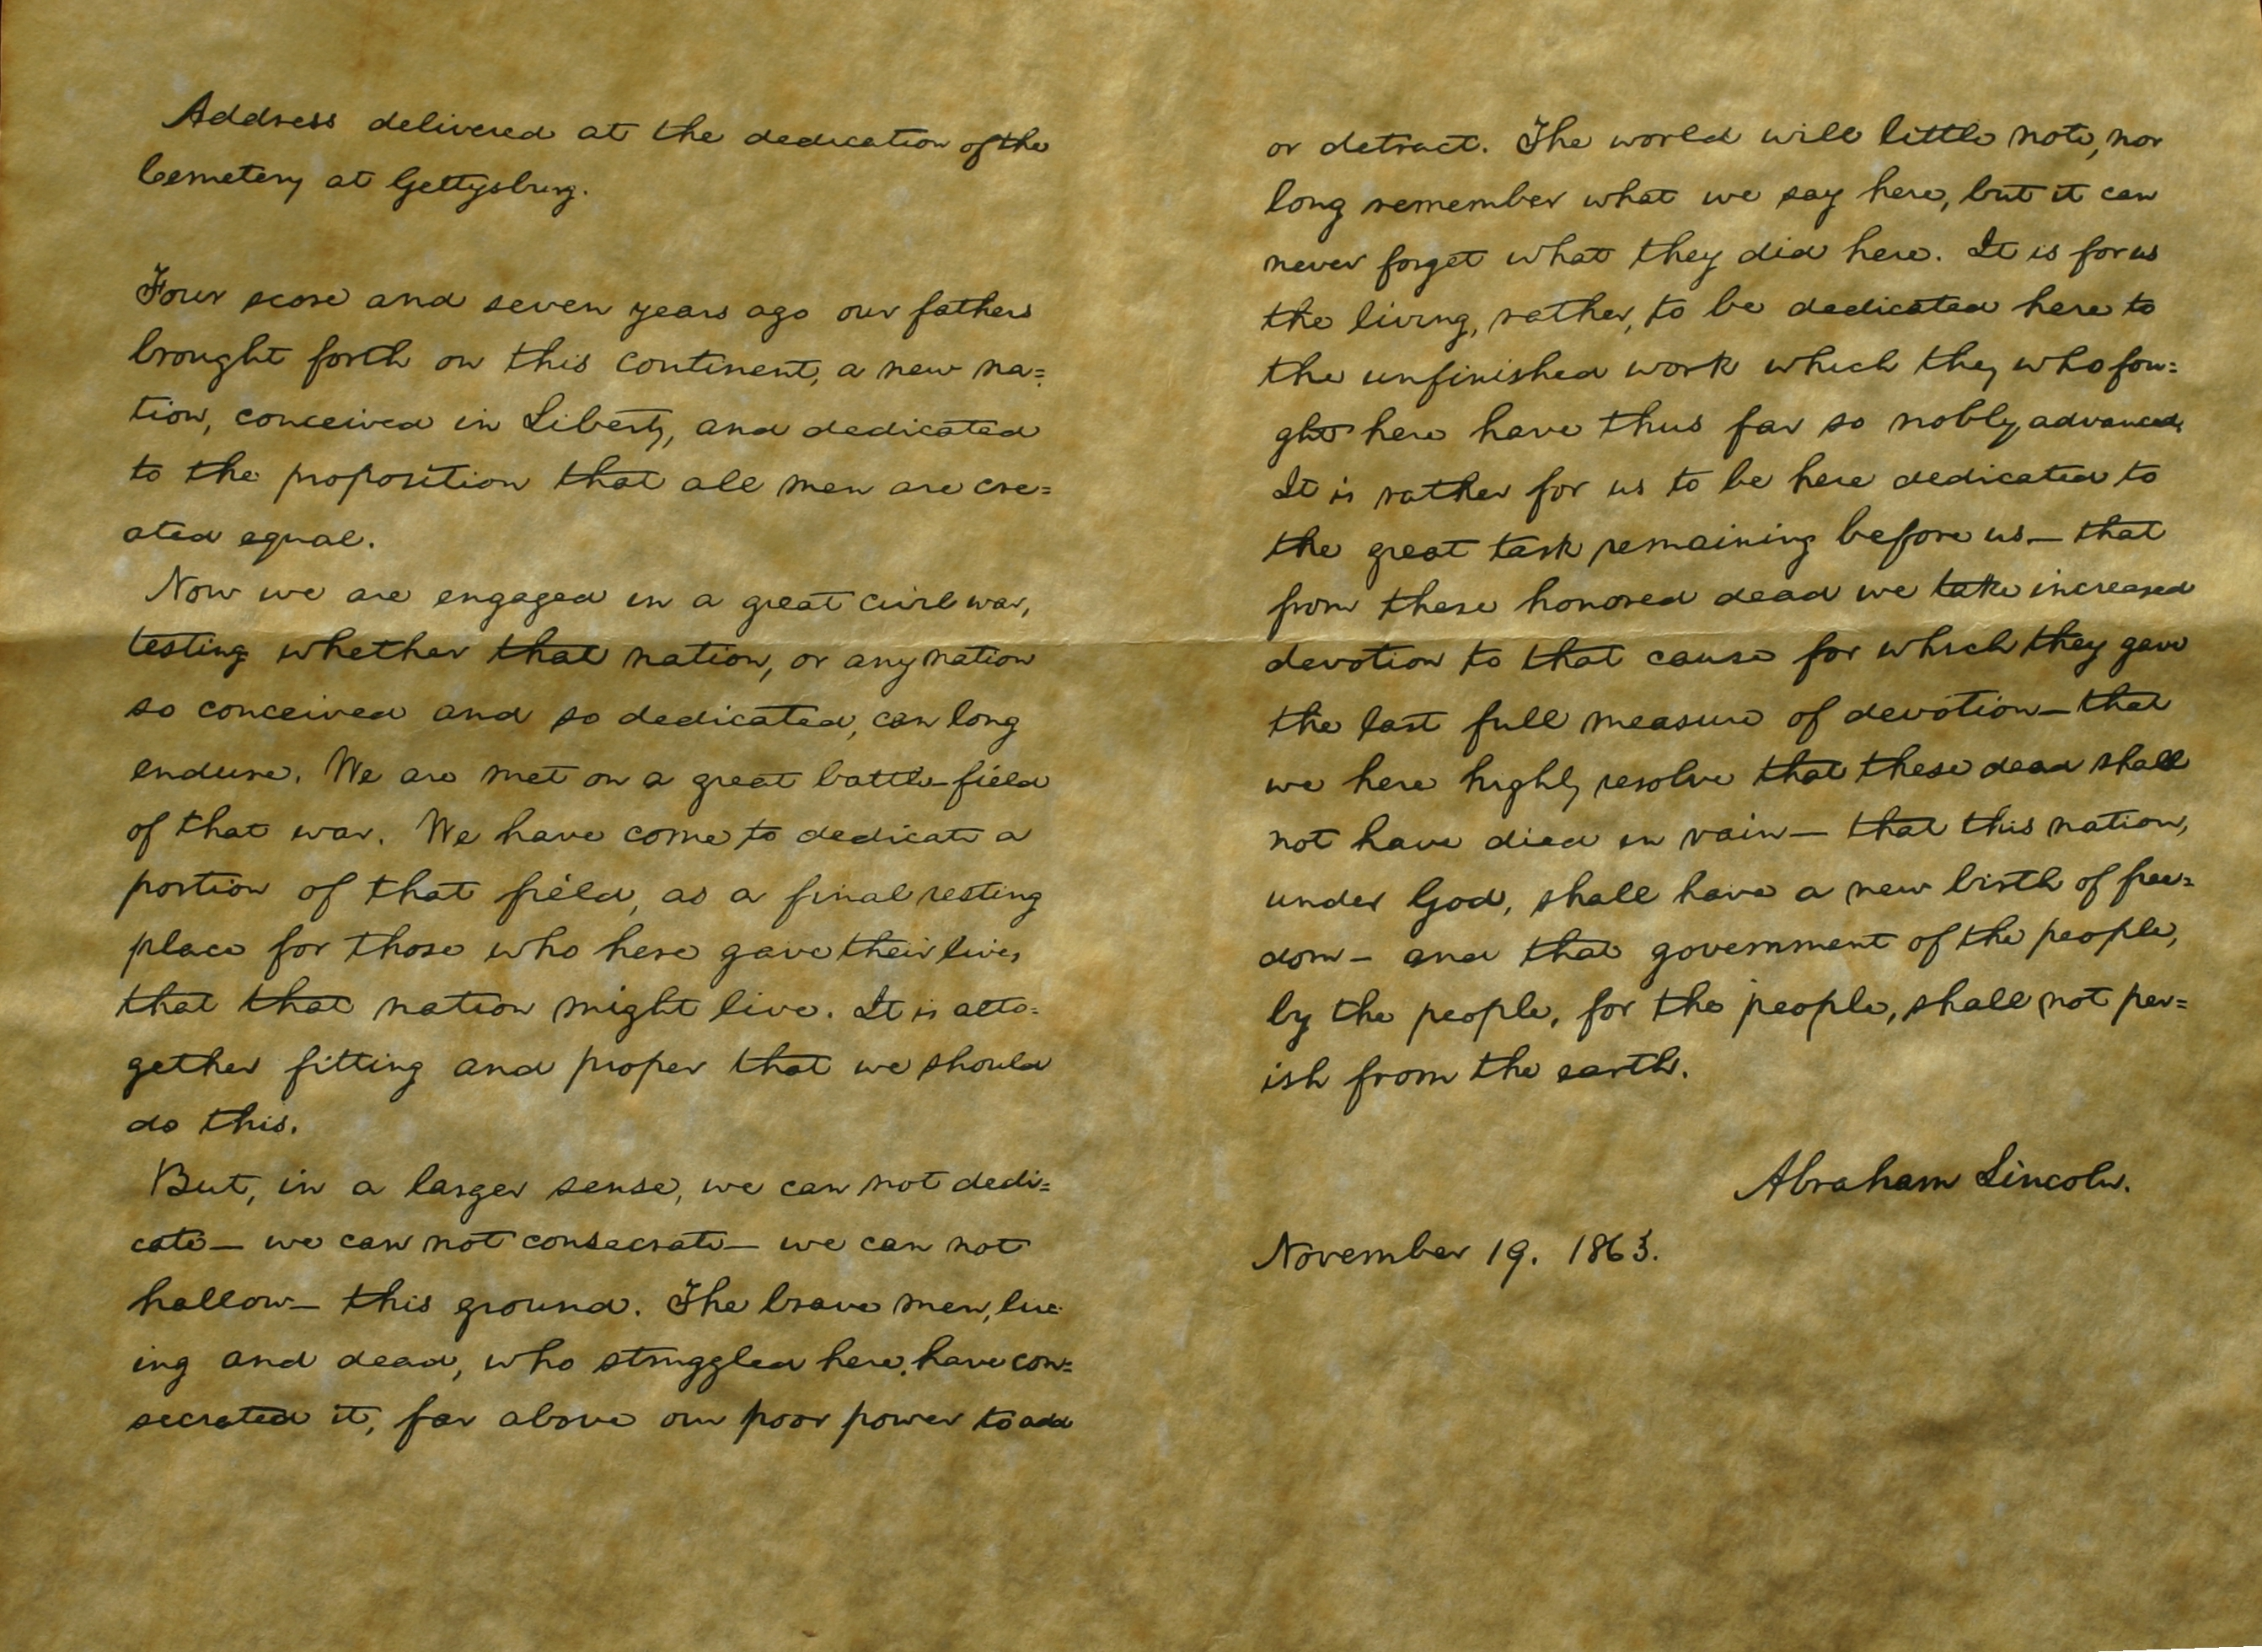 Original Gettysburg Address, November 19, 1863